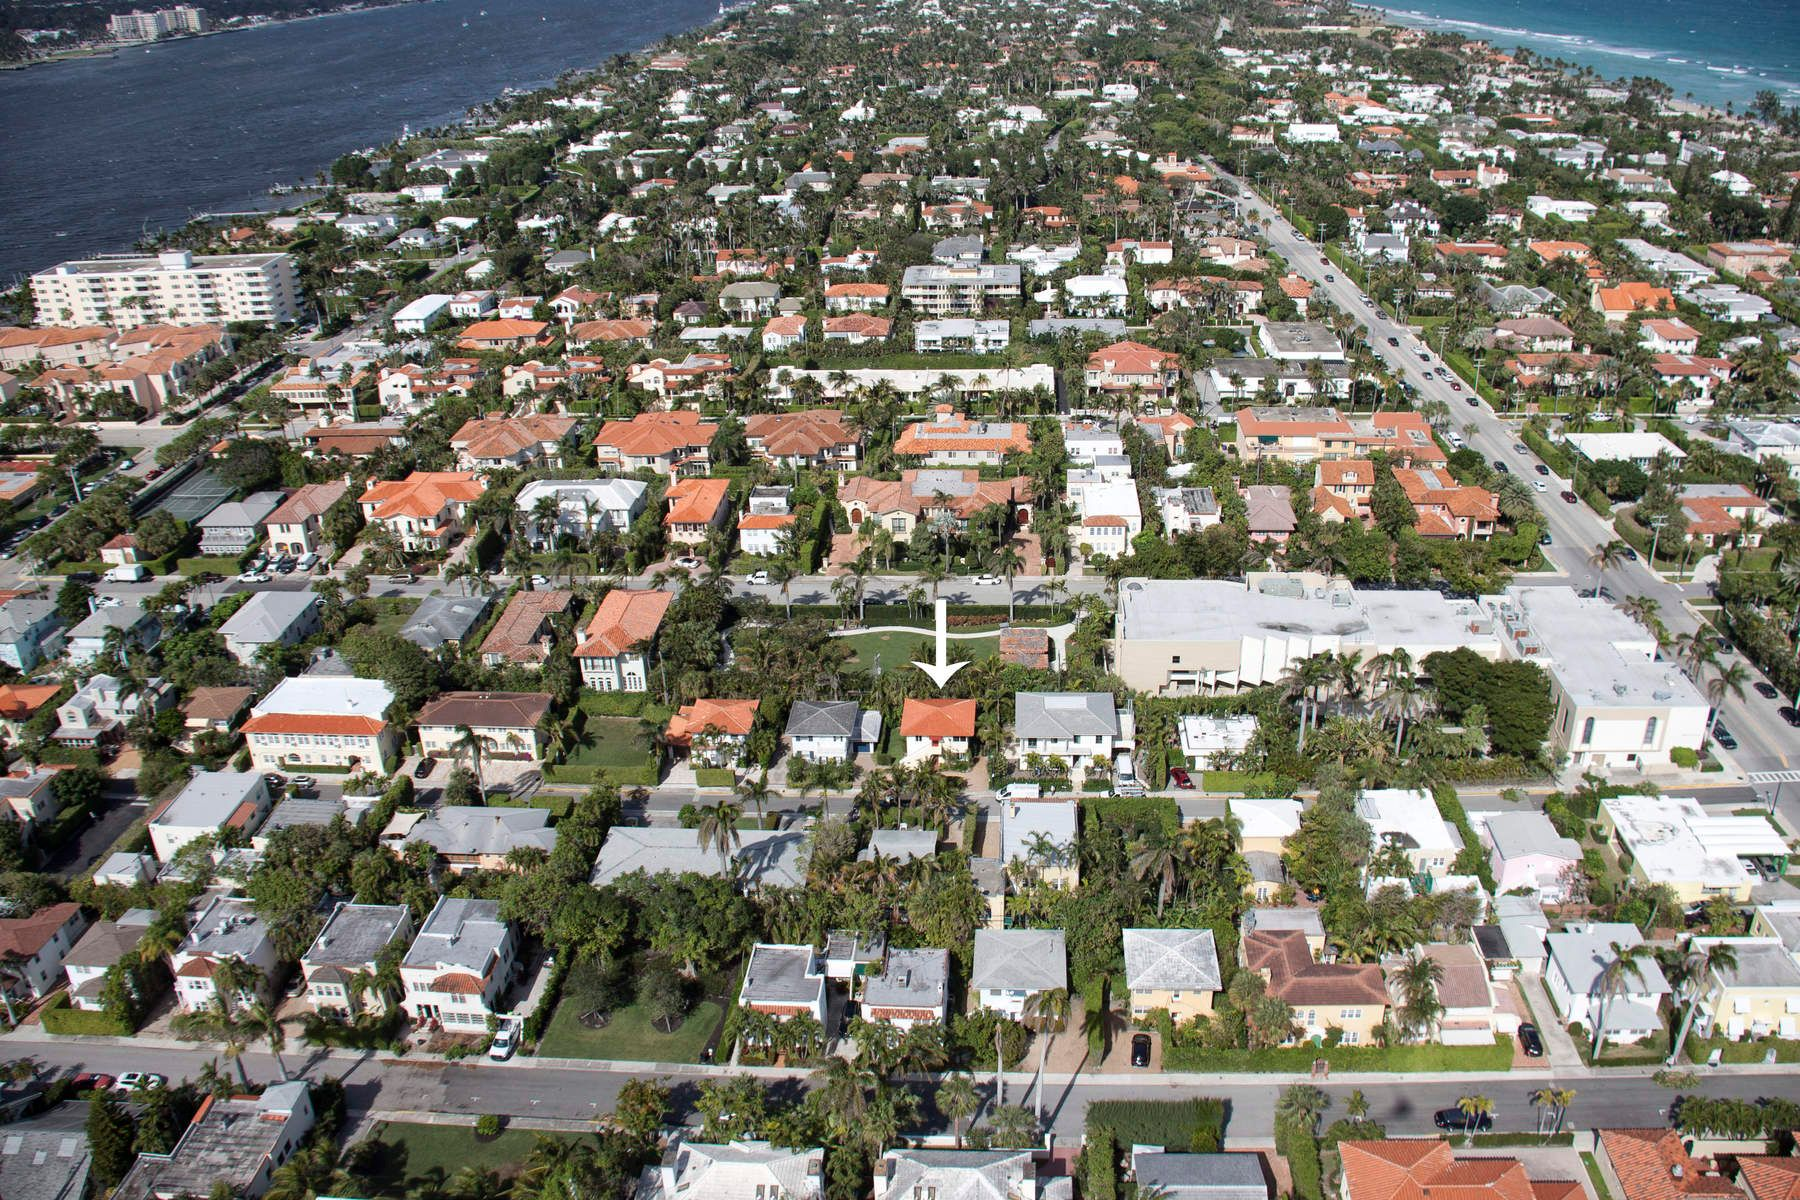 Single Family Home for Sale at Lovely Two Family Home 227 Oleander Ave, Palm Beach, Florida, 33480 United States